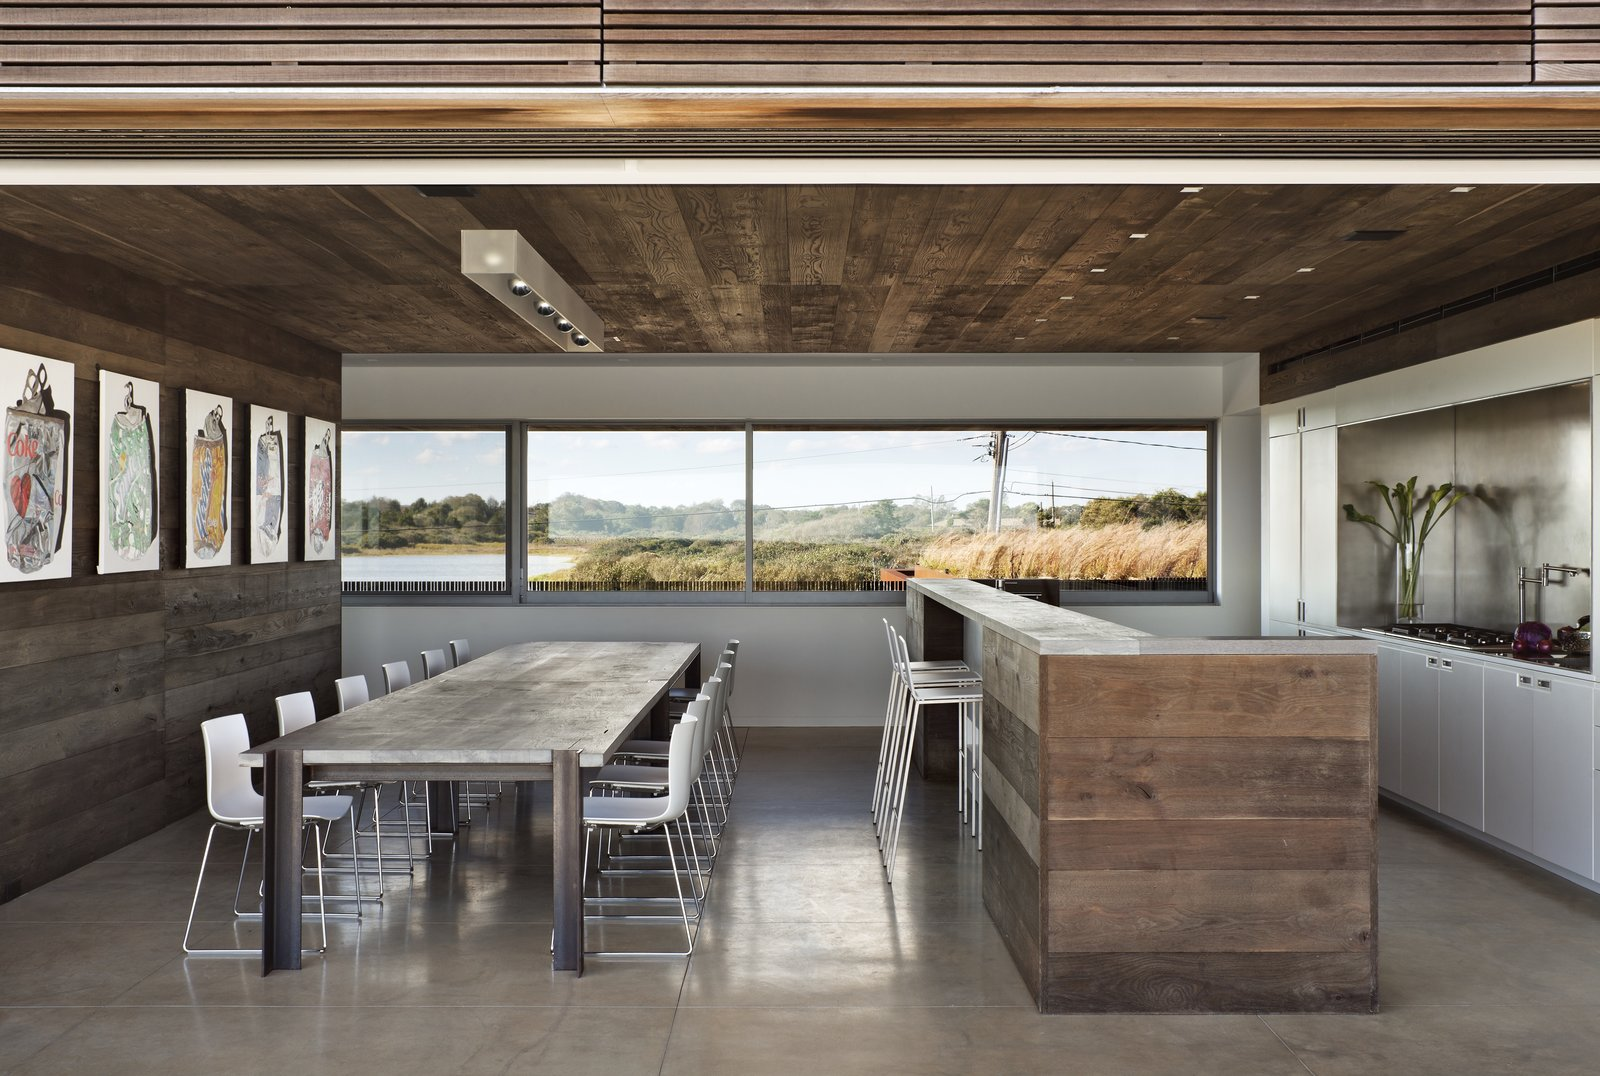 Tagged: Bar, Kitchen, Concrete Counter, Concrete Backsplashe, Concrete Floor, White Cabinet, Ceiling Lighting, Recessed Lighting, Refrigerator, and Range.  Sagaponack, NY by The Corcoran Group